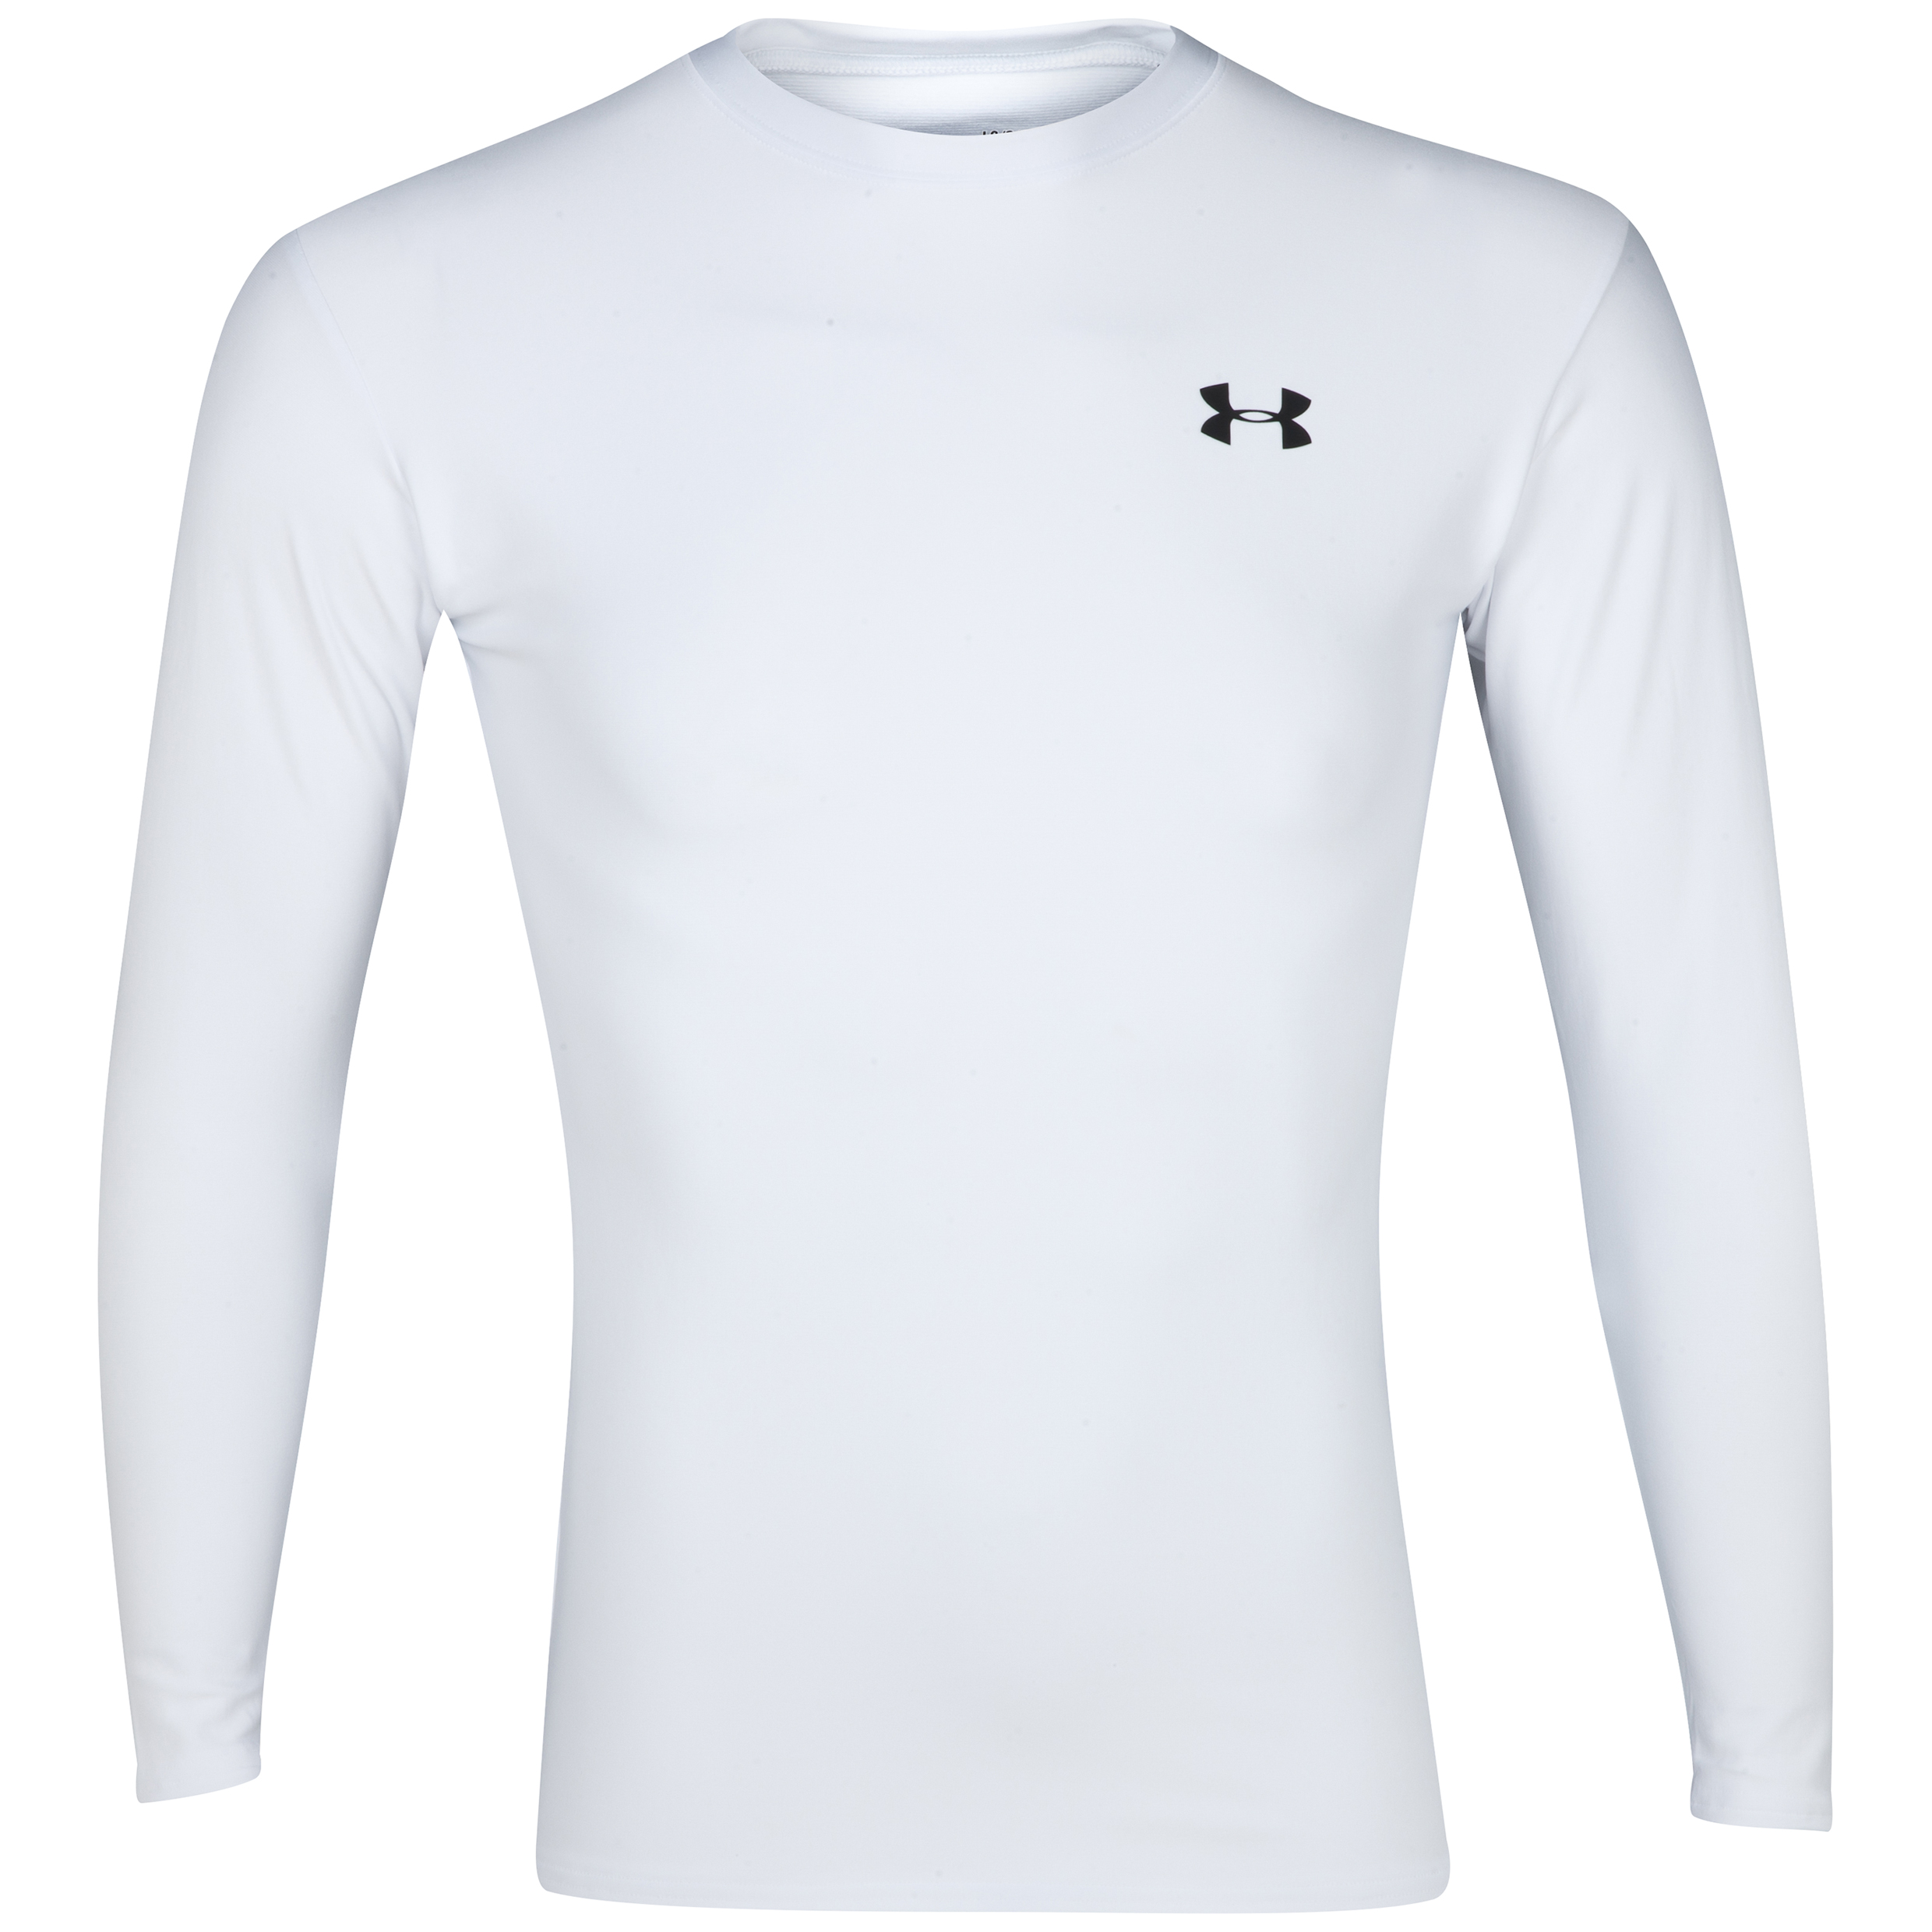 Under Armour Evo Coldgear crew 11 Base Layer Top - Long Sleeve White